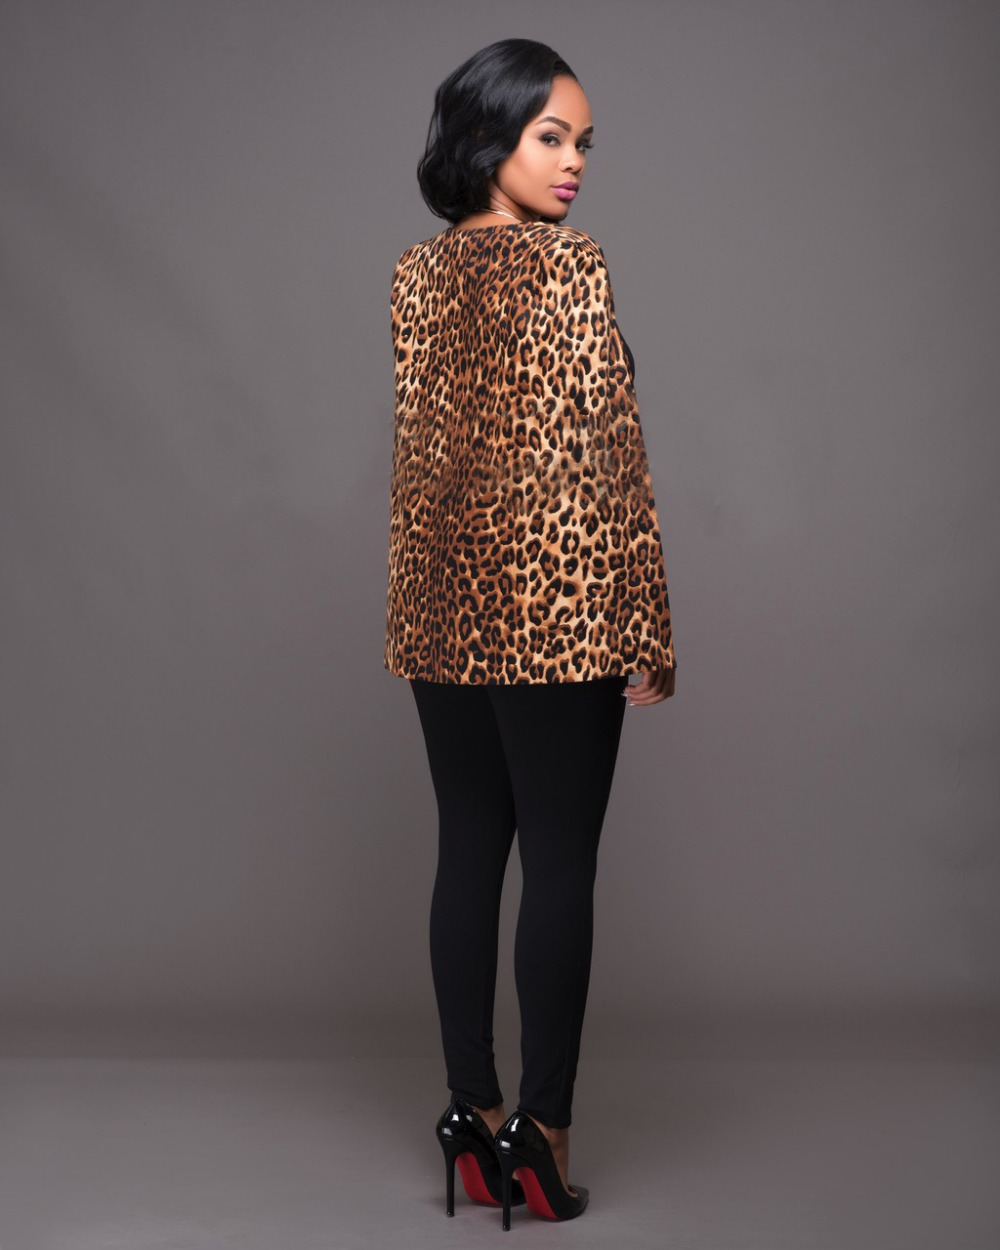 2016 Hot Women Leopard Print Jacket European Style Coat Loose Sleeves Jazz Coat Girl Fashion